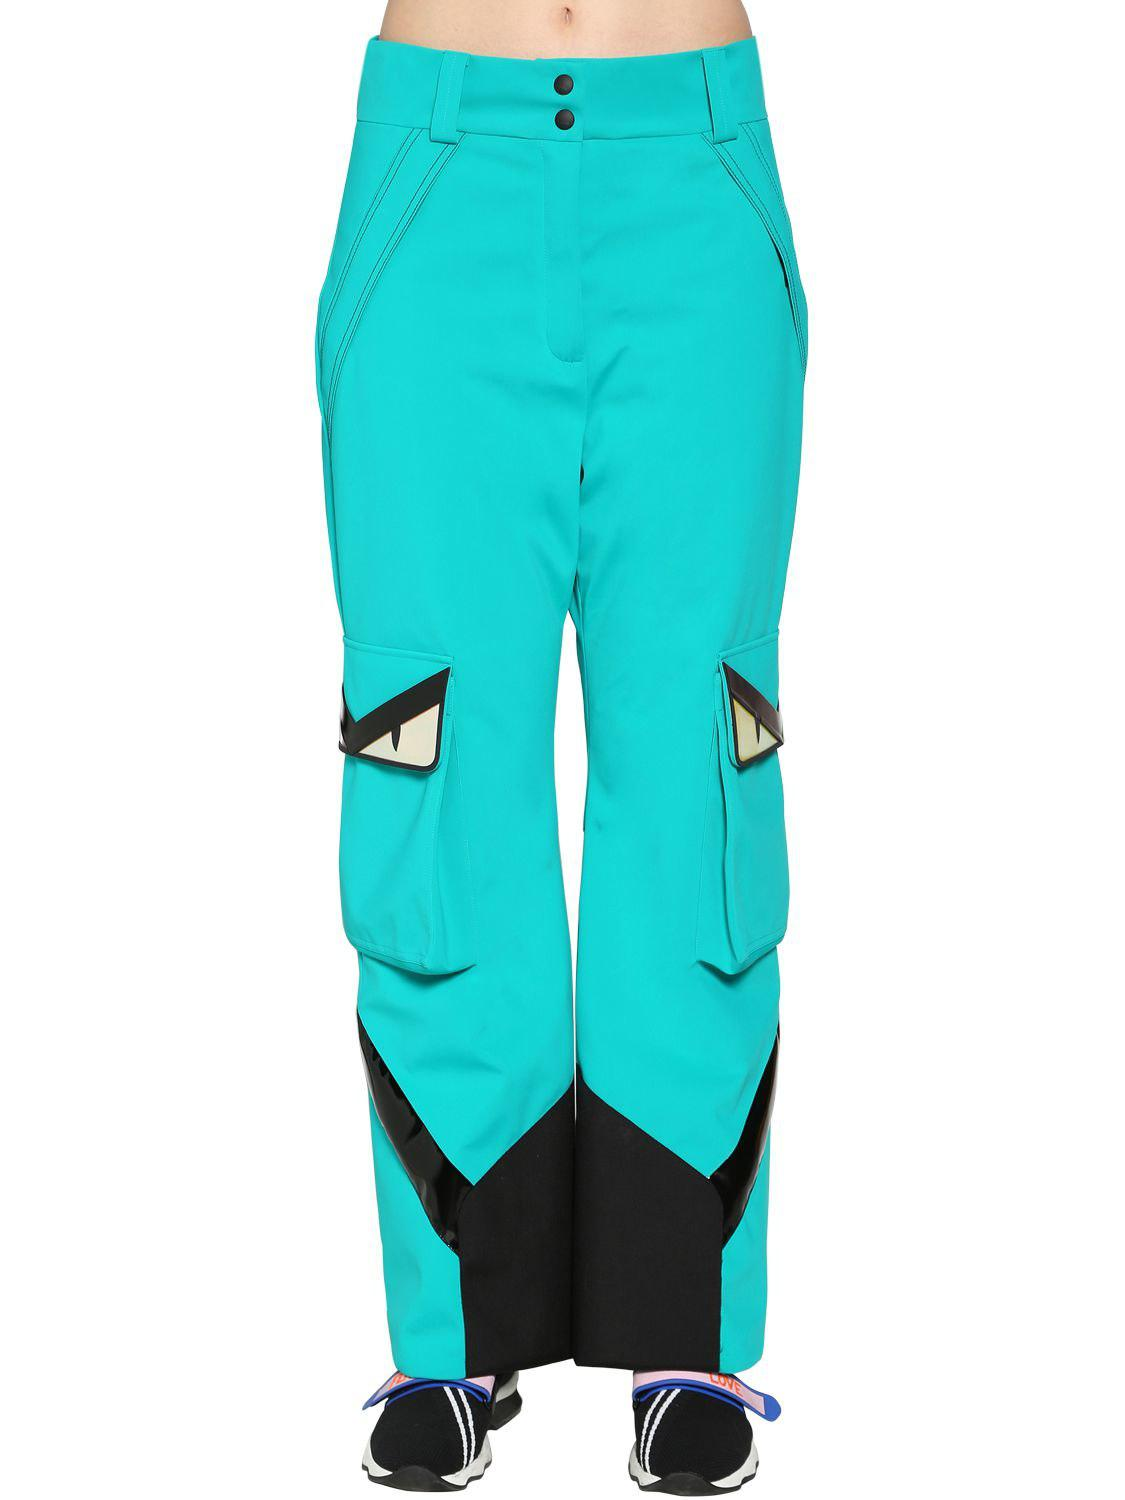 Lyst - Fendi Monster Stretch Tech Stirrup Ski Pants in Blue 9bc994f34